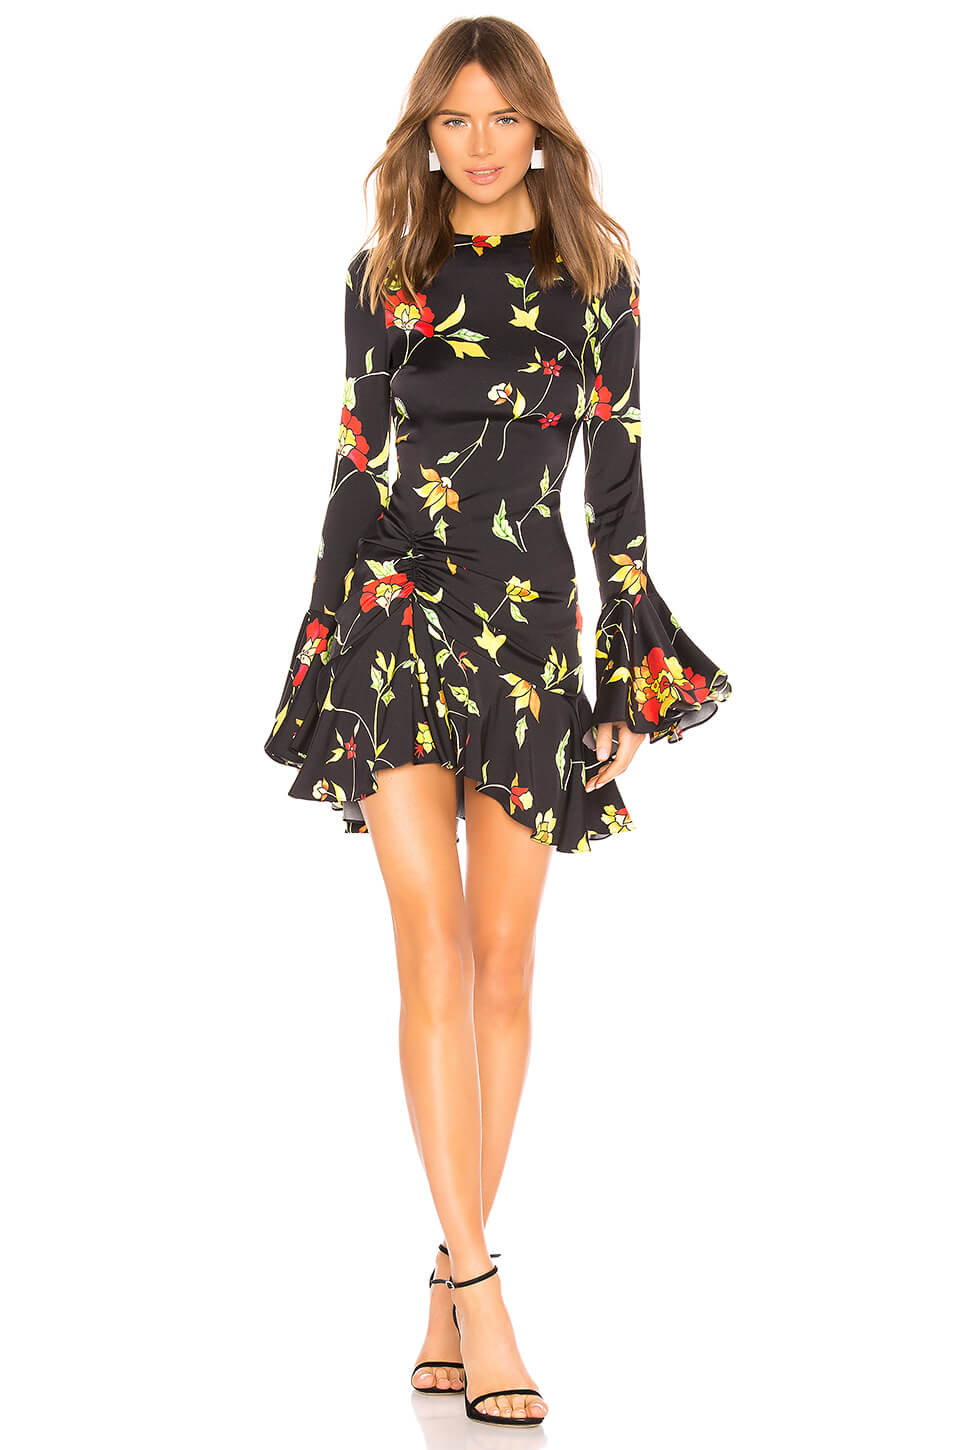 21 Revolve Dresses That Are Bonafide Head Turners I Am Co Check our latest styles of dresses such as long sleeve at revolve free shipping for orders above $100 usd. 21 revolve dresses that are bonafide